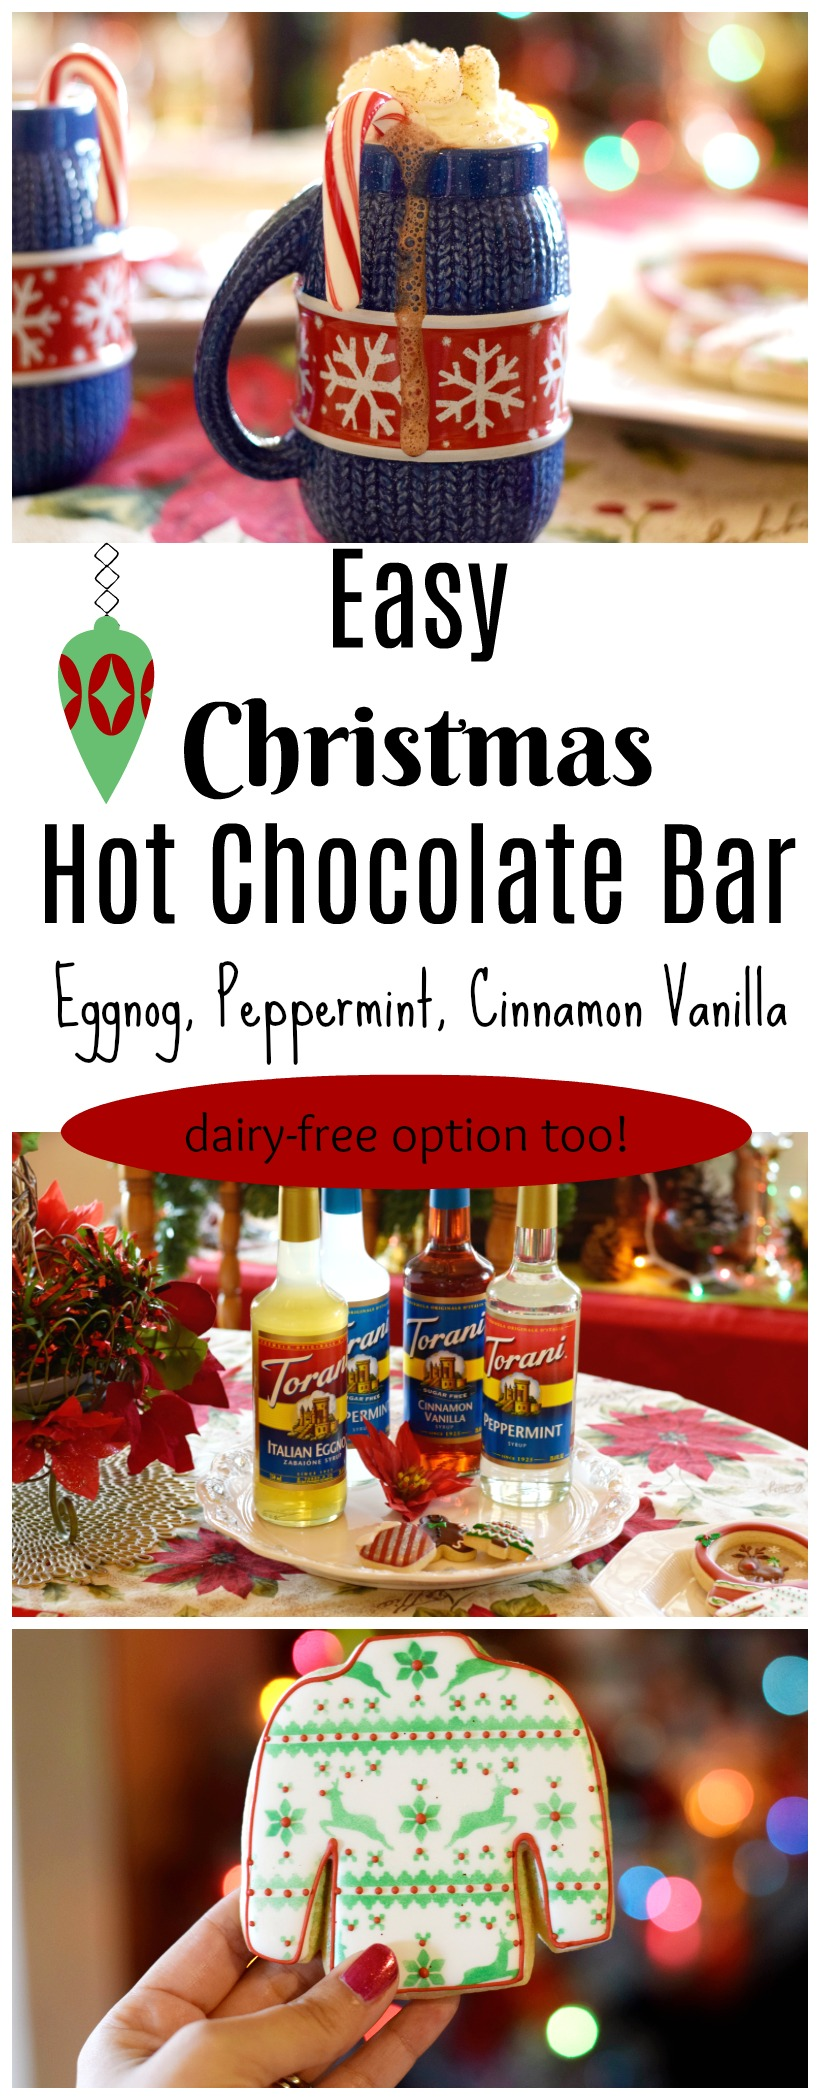 easy Christmas Hot Chocolate Bar with different flavor options! Plus dairy-free option too on chemistrycachet.com